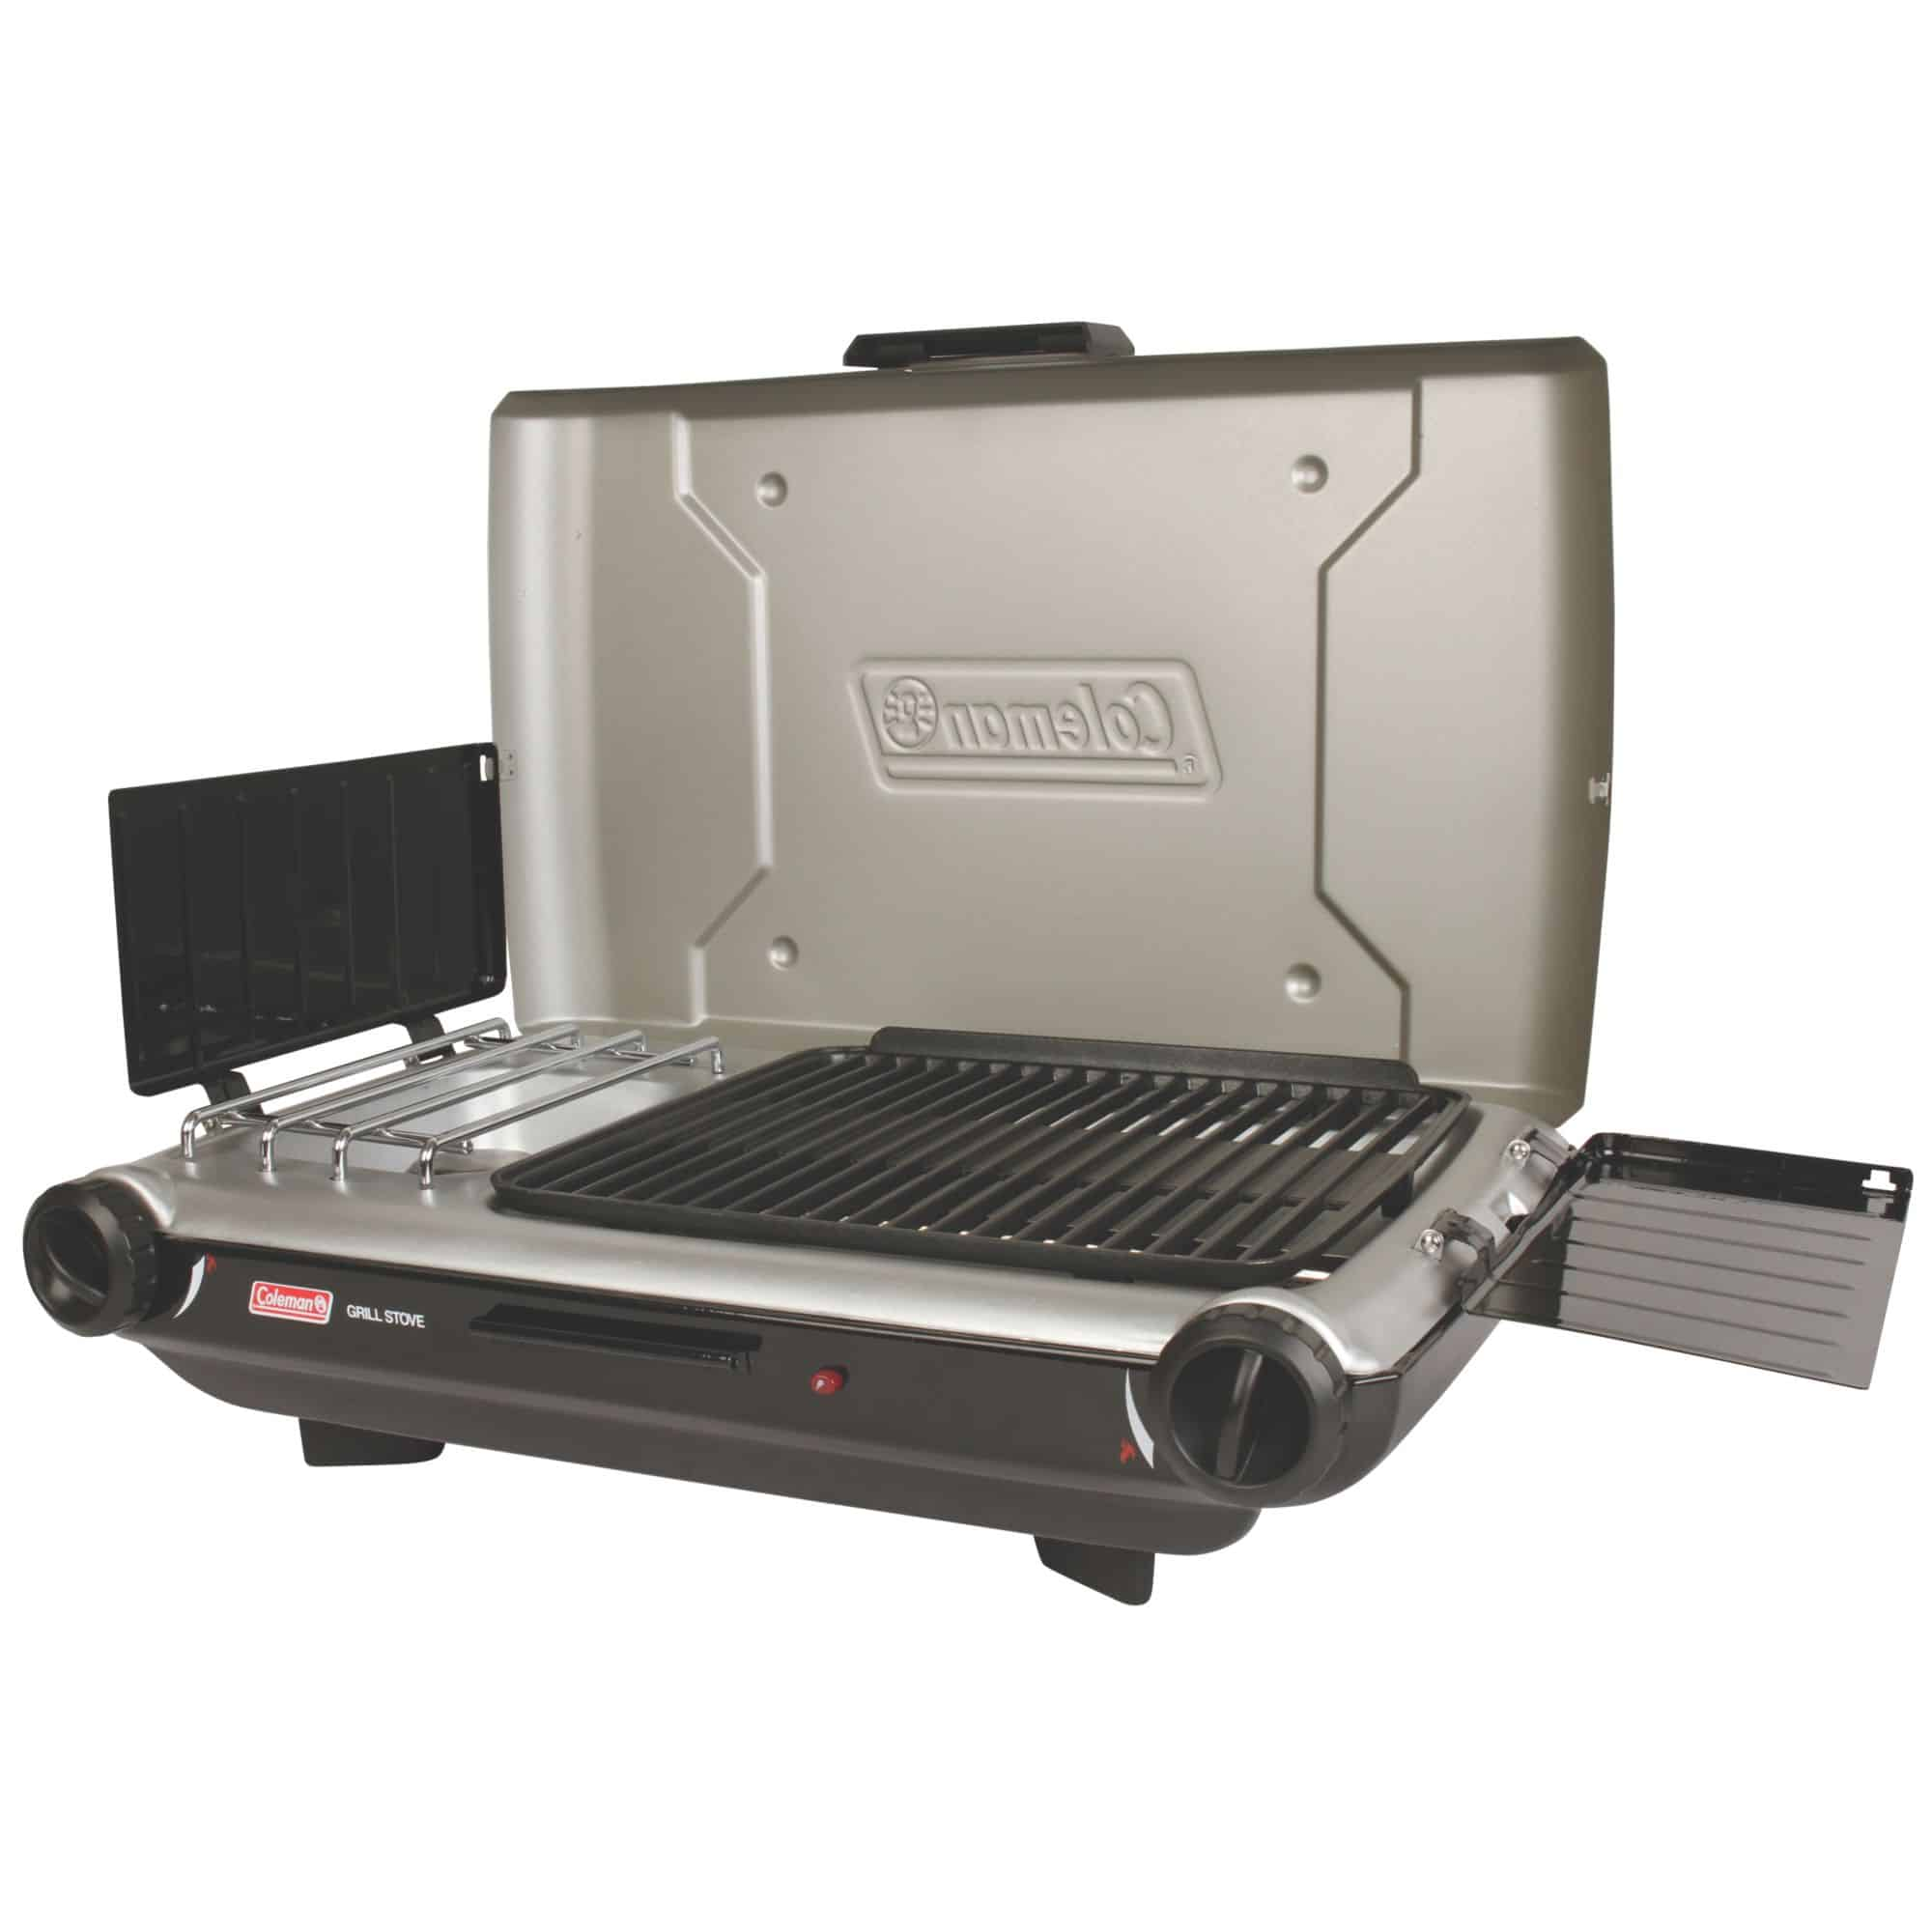 Best Compact Camping Grill Stove, Coleman Grill/Stove+